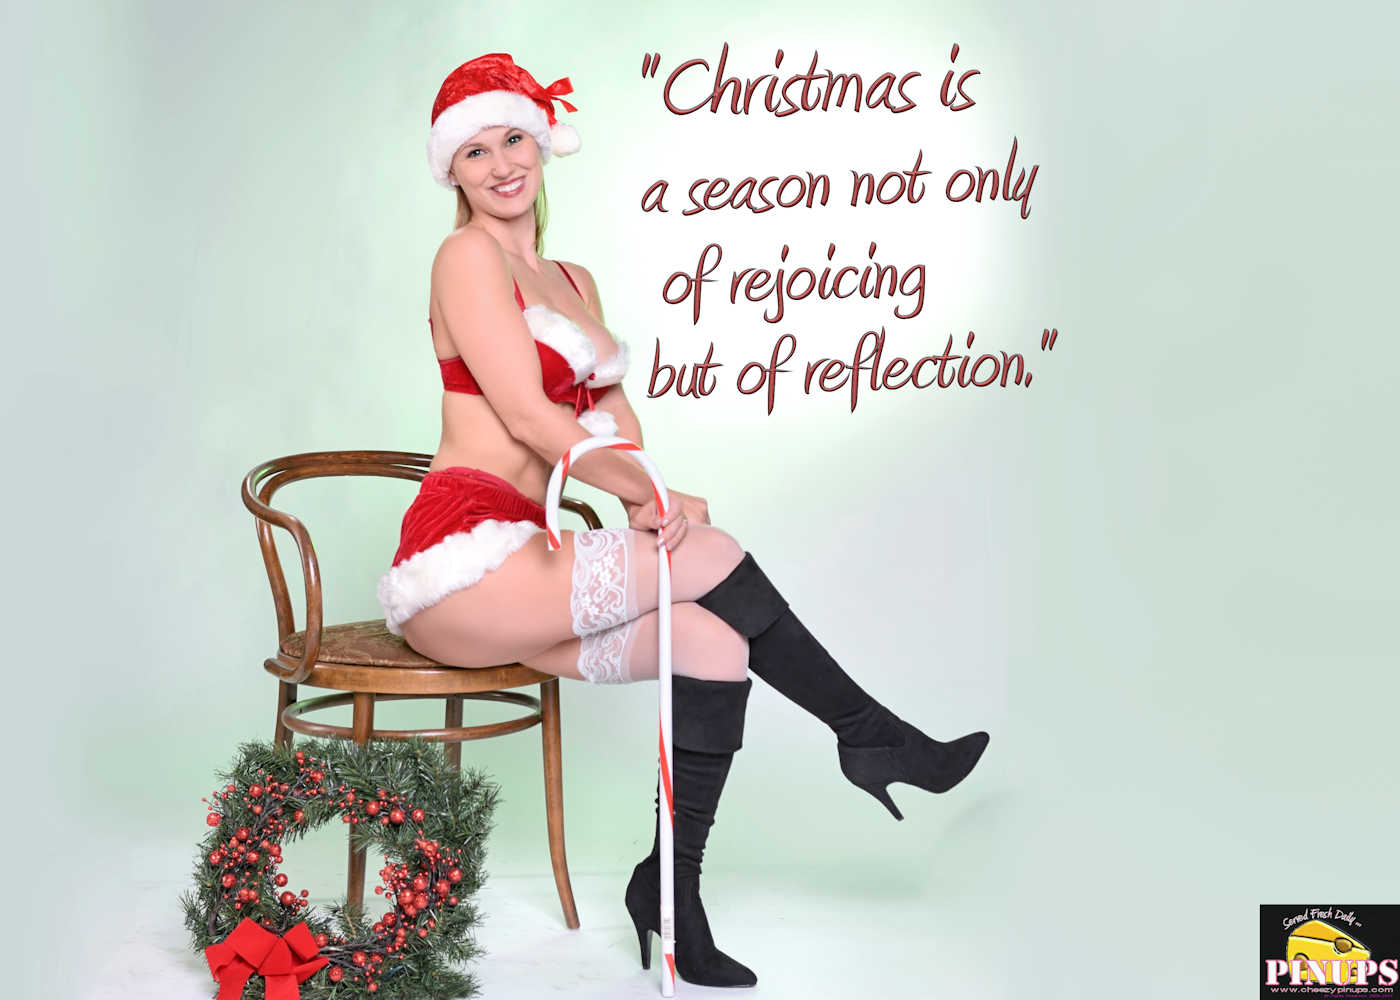 """Cheezy Pinup - December 24, 2017   """"Christmas is a season not only of rejoicing but of reflection."""" - Winston Churchill Model: Kimberly"""